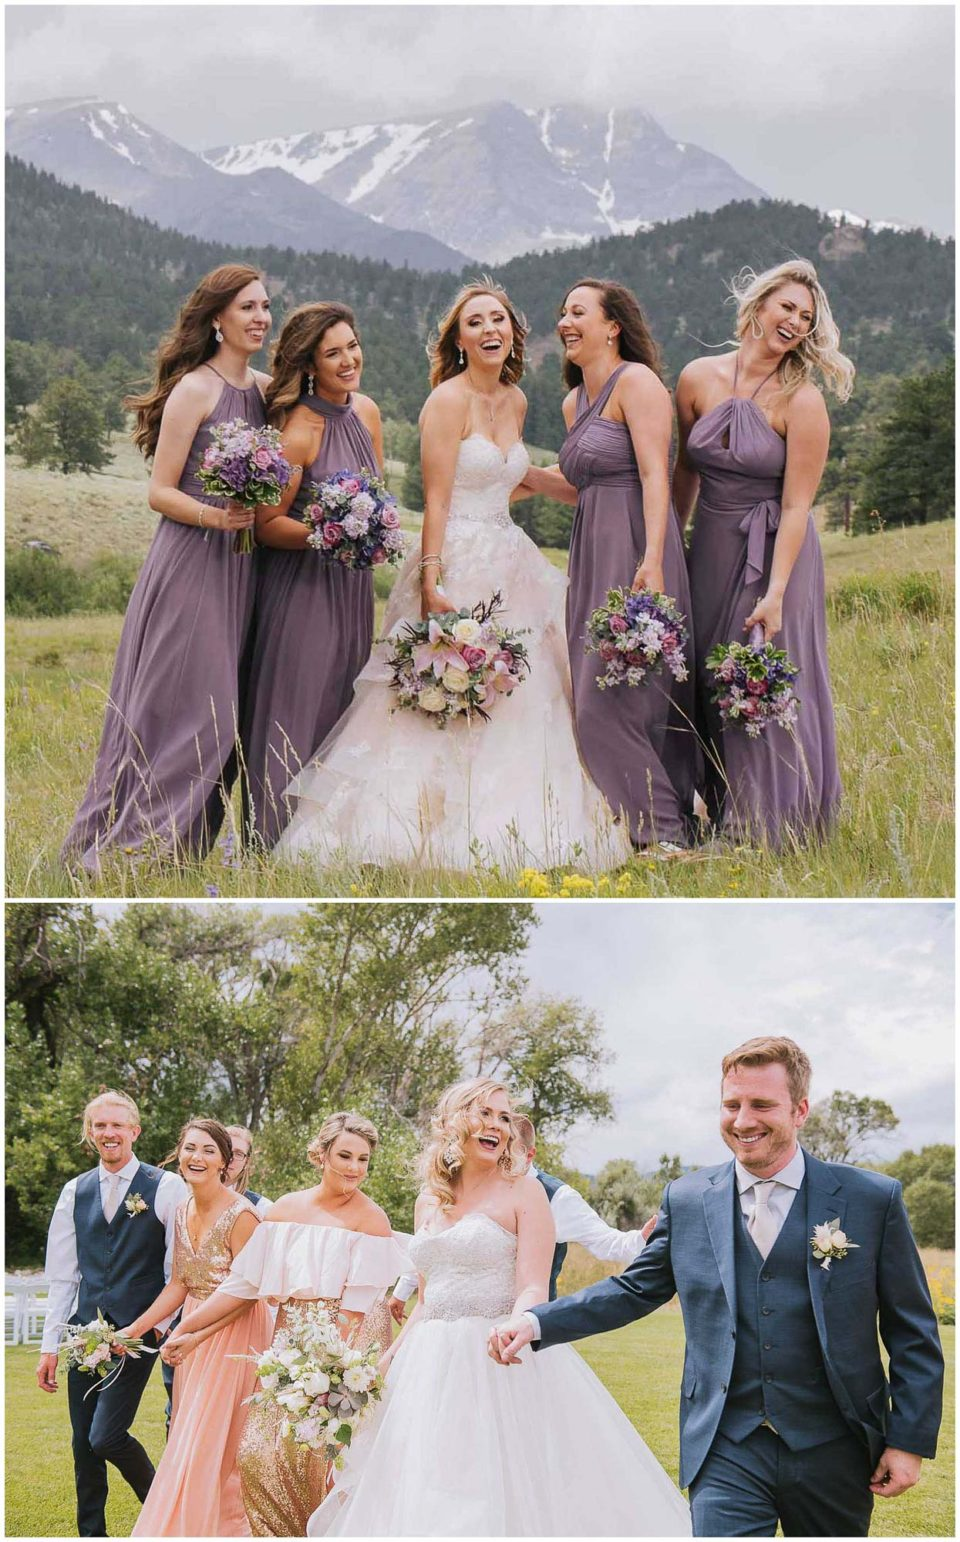 Micro wedding party in mountains photographed by Elevate Photography